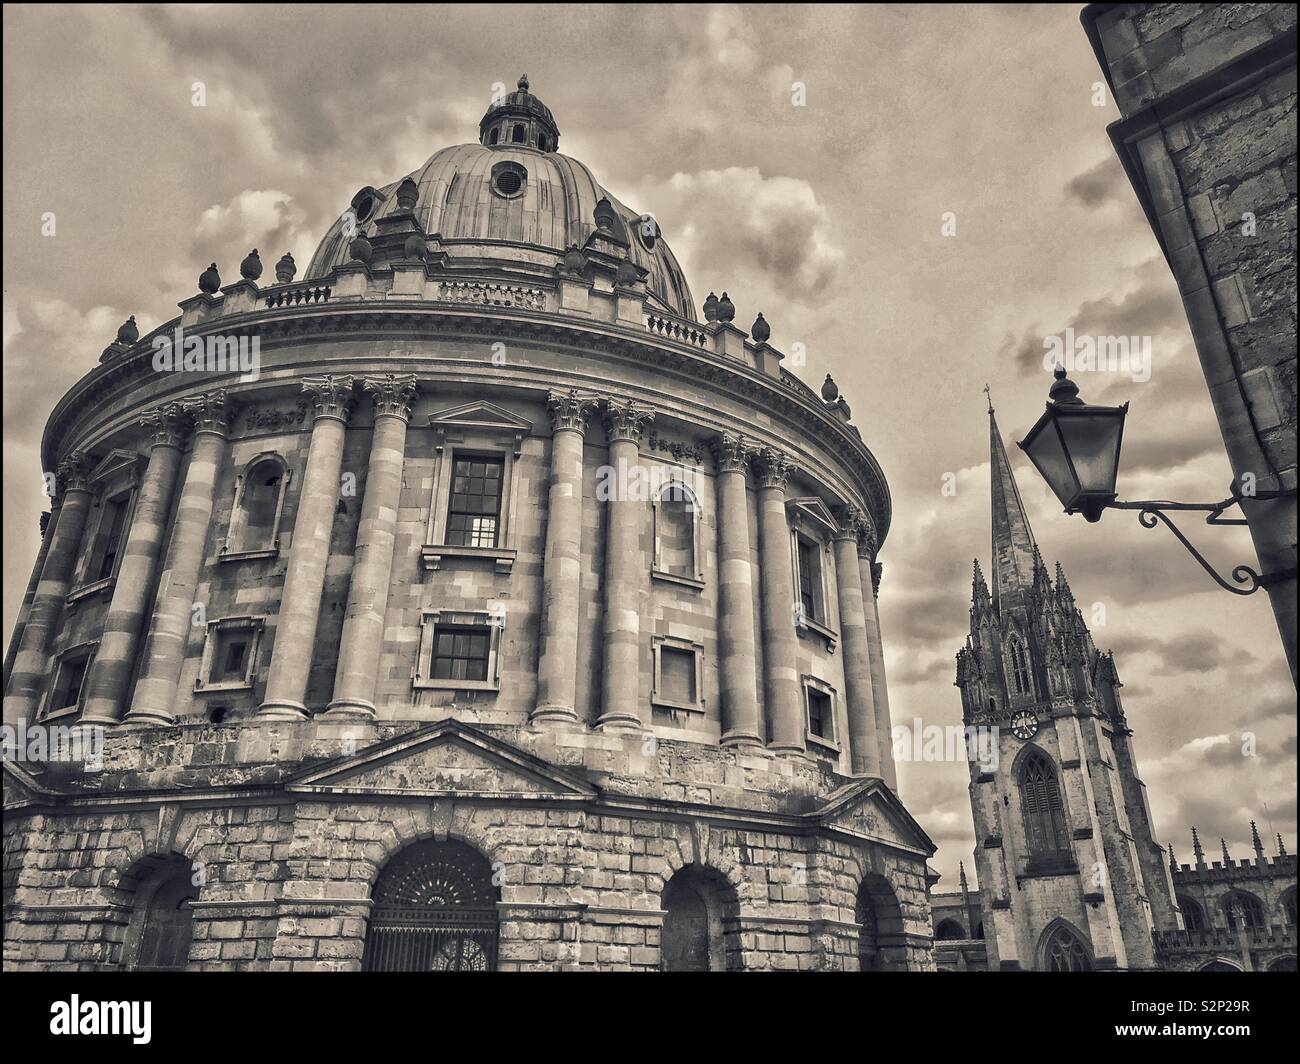 A retro effect picture of the Radcliffe Camera Building and The University Church Of St. Mary the Virgin in Oxford, England, UK. An iconic scene and world famous. Photo © COLIN HOSKINS. - Stock Image